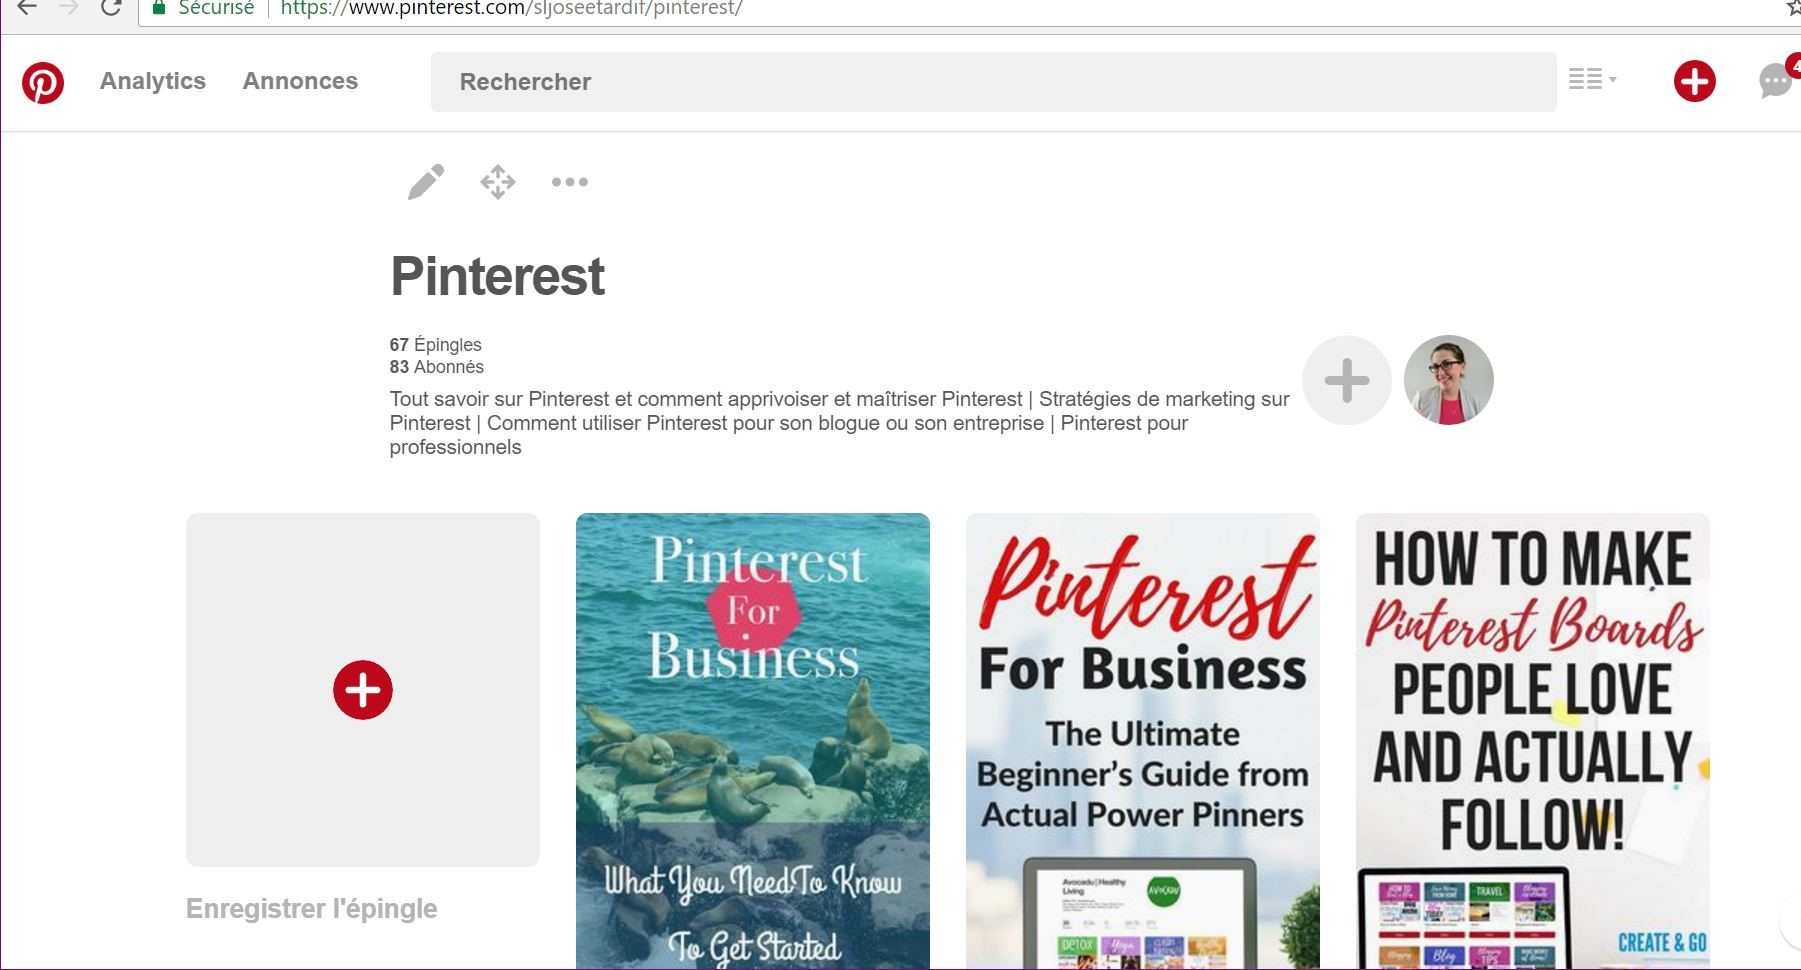 Exemple de description de tableaux dans Pinterest.